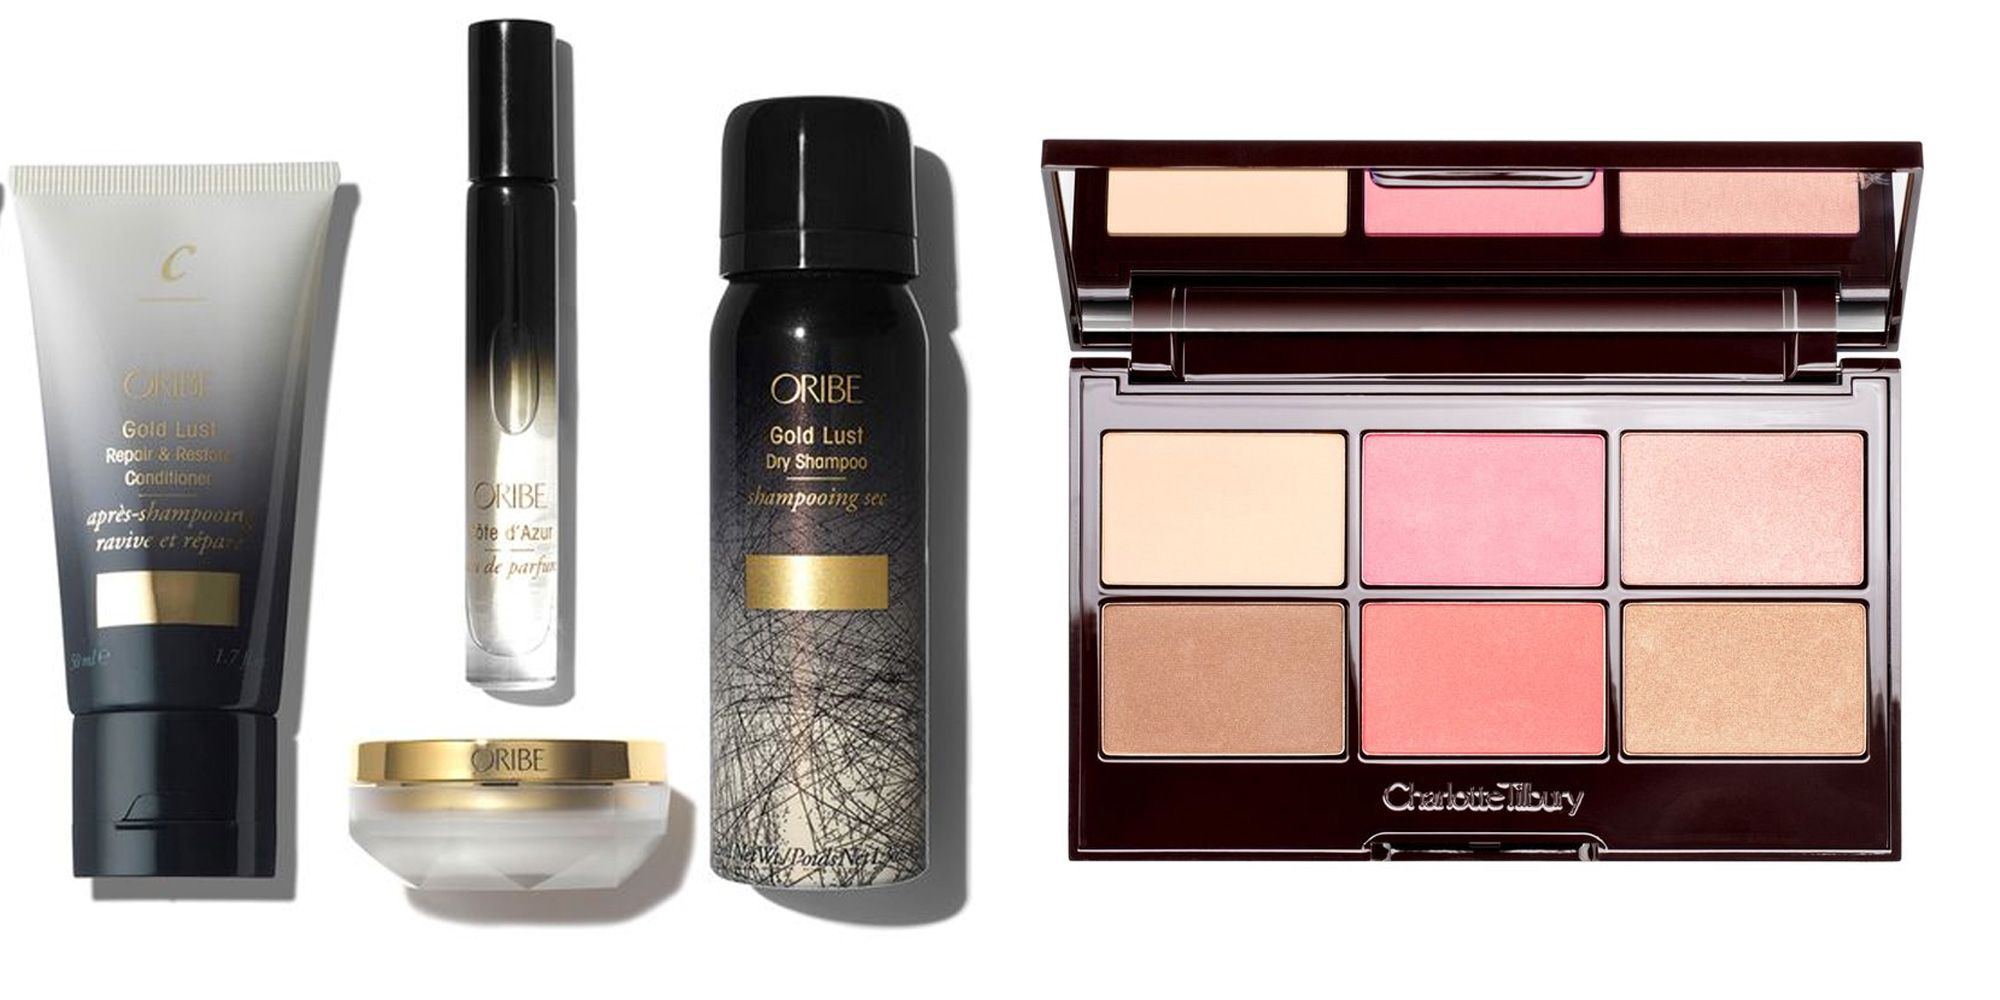 10 Luxury Beauty Steals You Should Snag at the Nordstrom Anniversary Sale